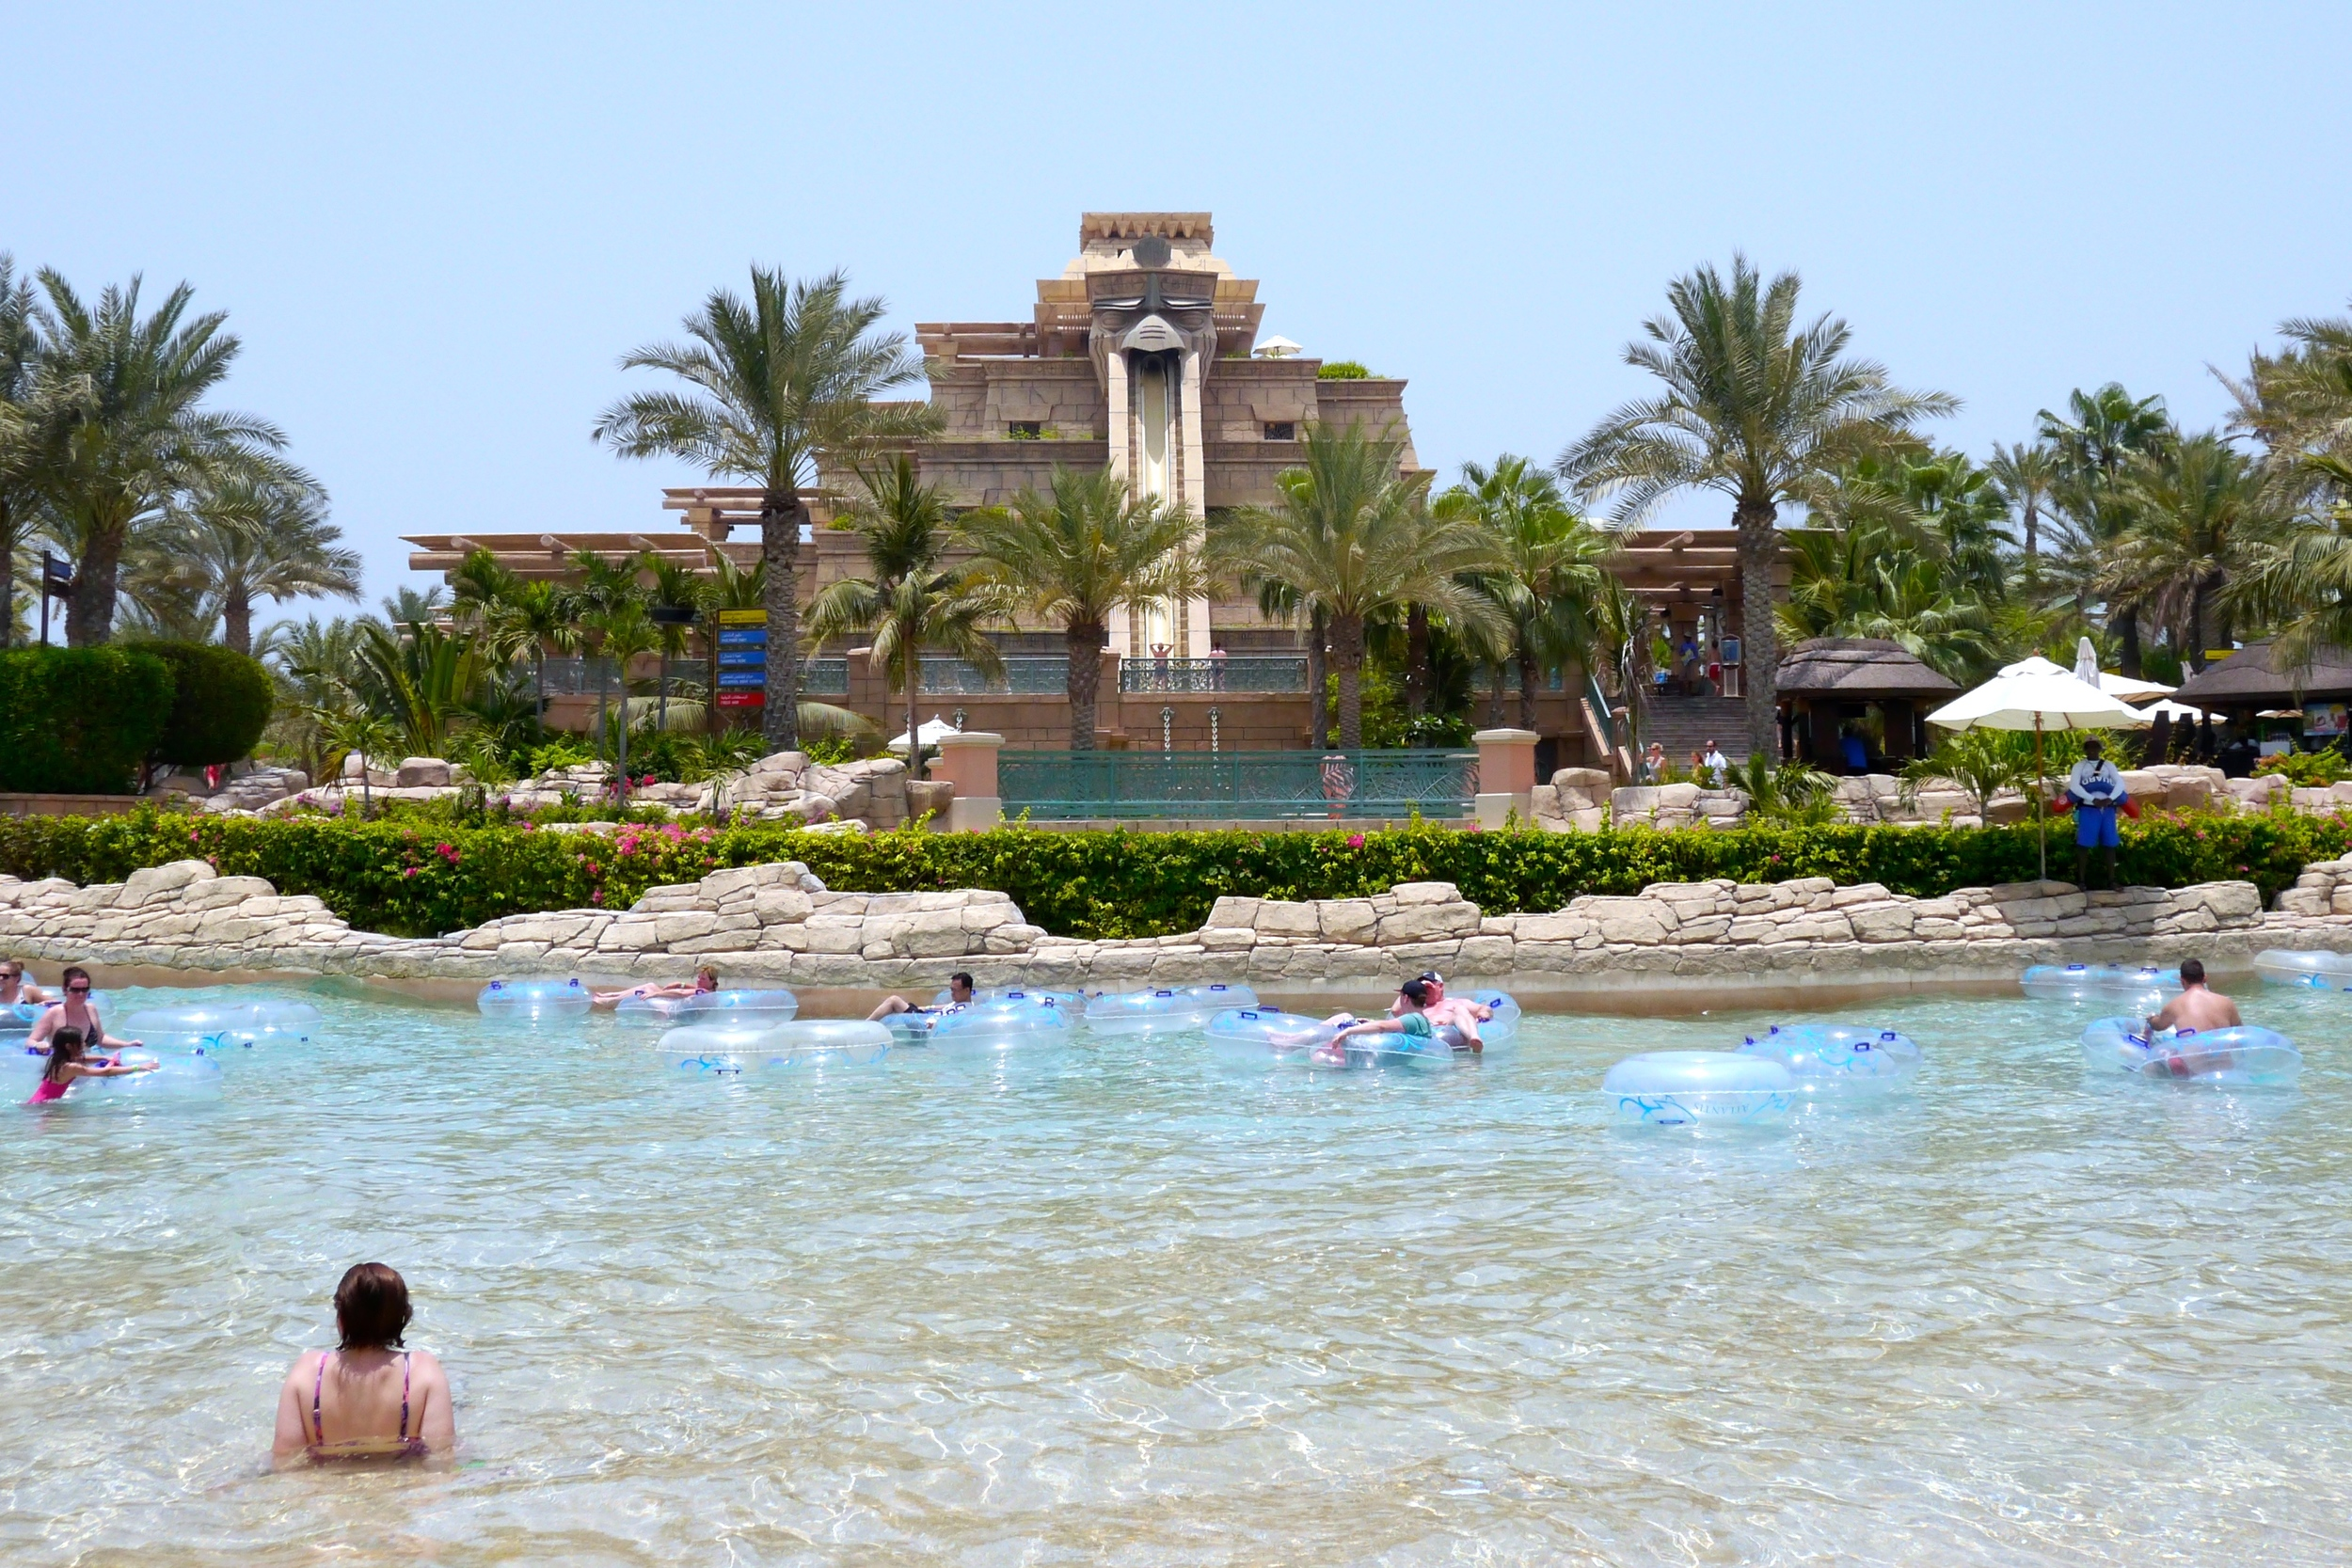 3/Aquaventure Waterpark